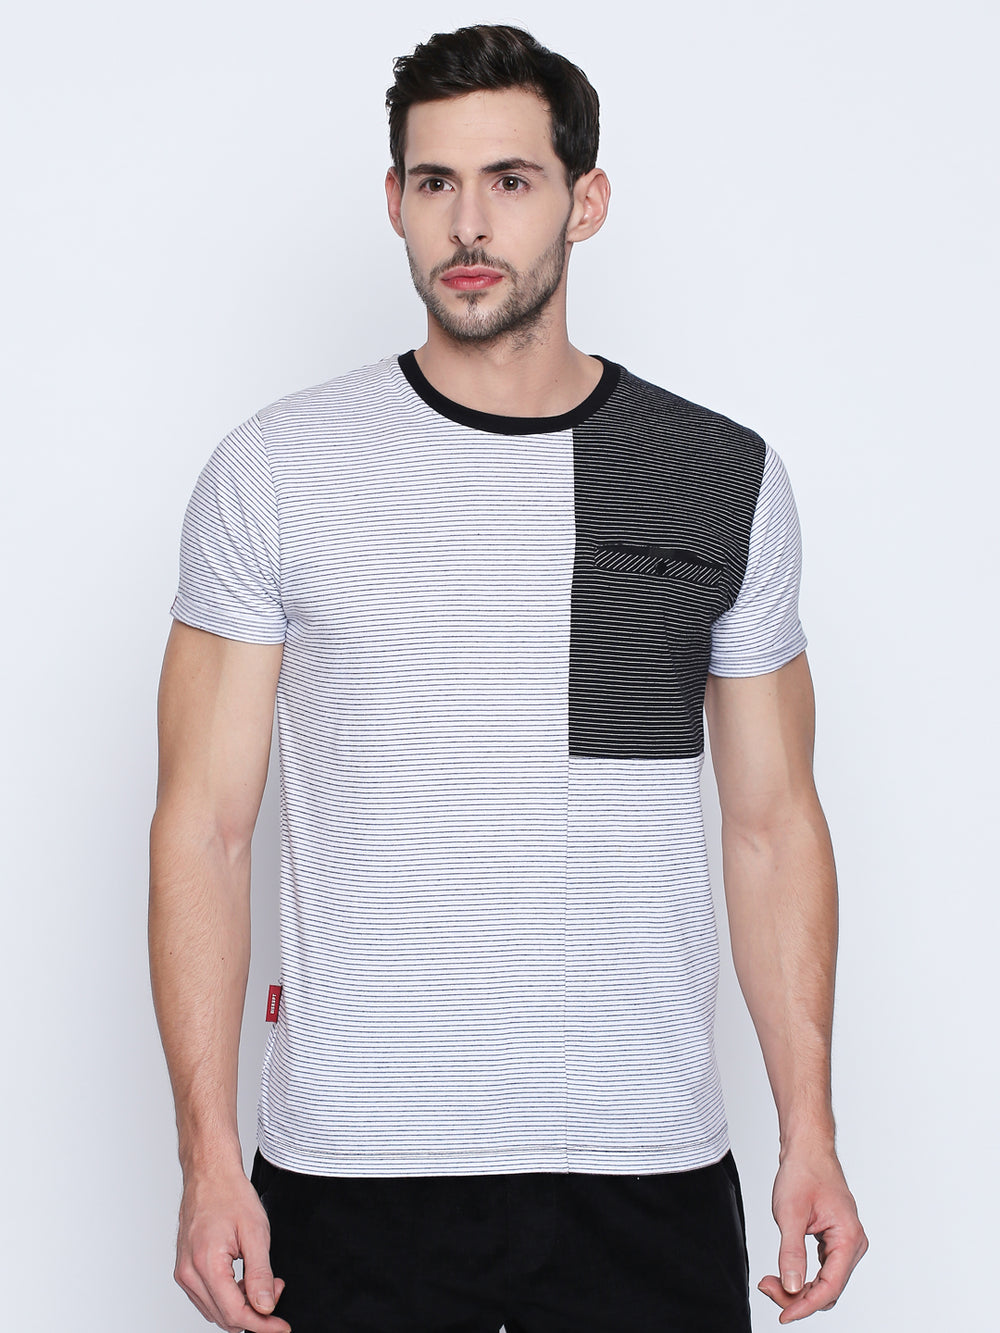 White and Black Geometric Patterned Cotton T-Shirt